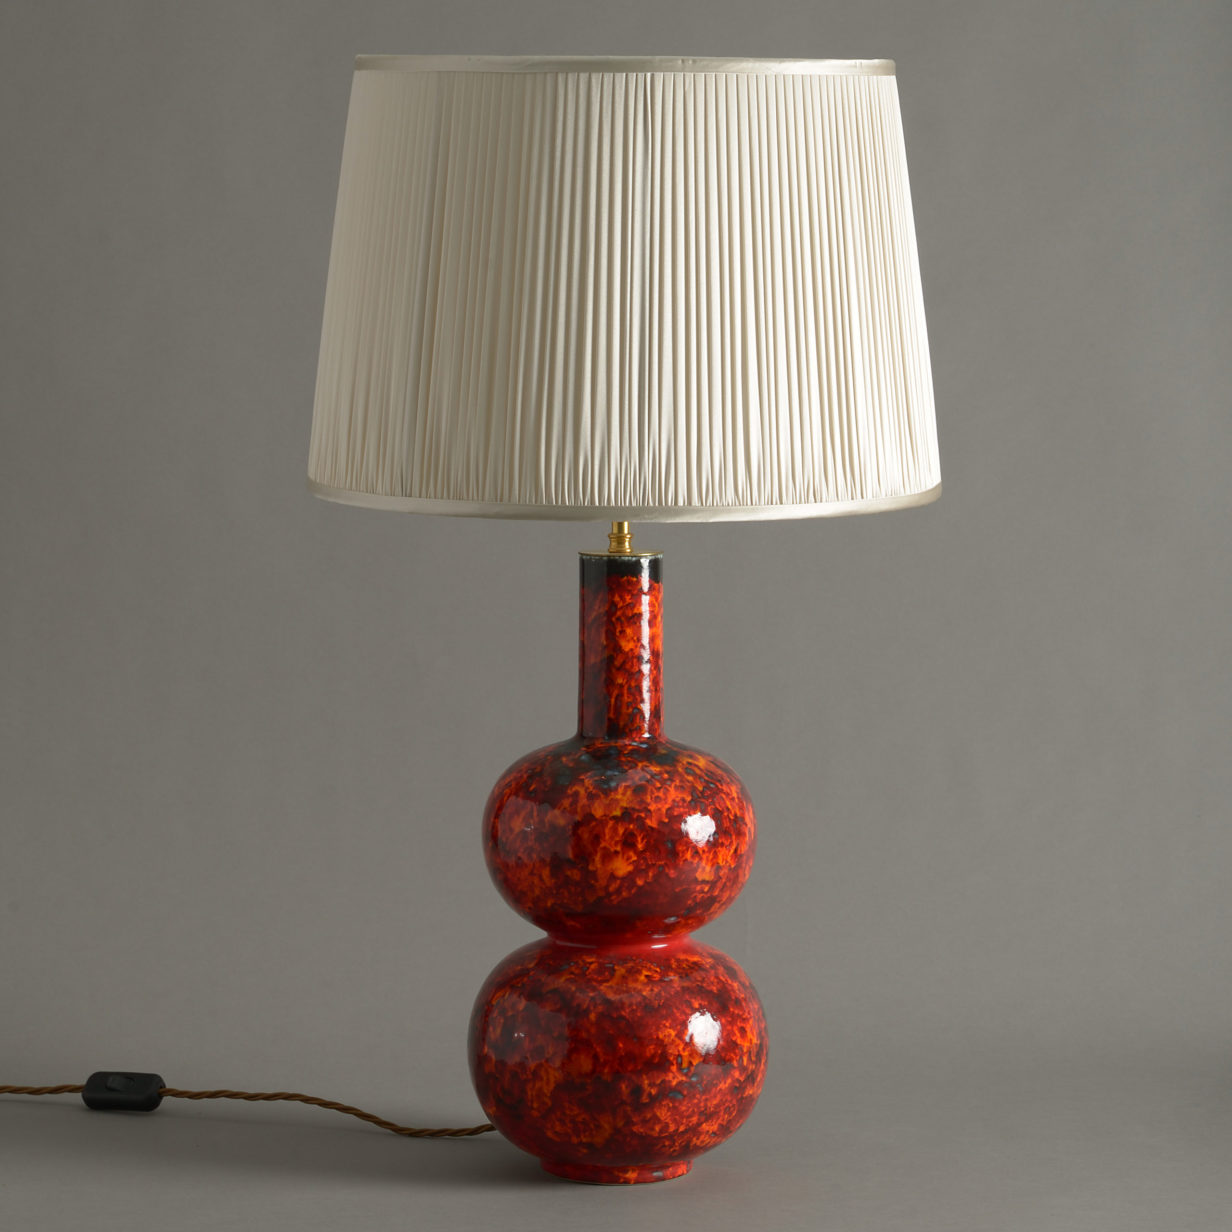 A Red Studio Pottery Vase Lamp